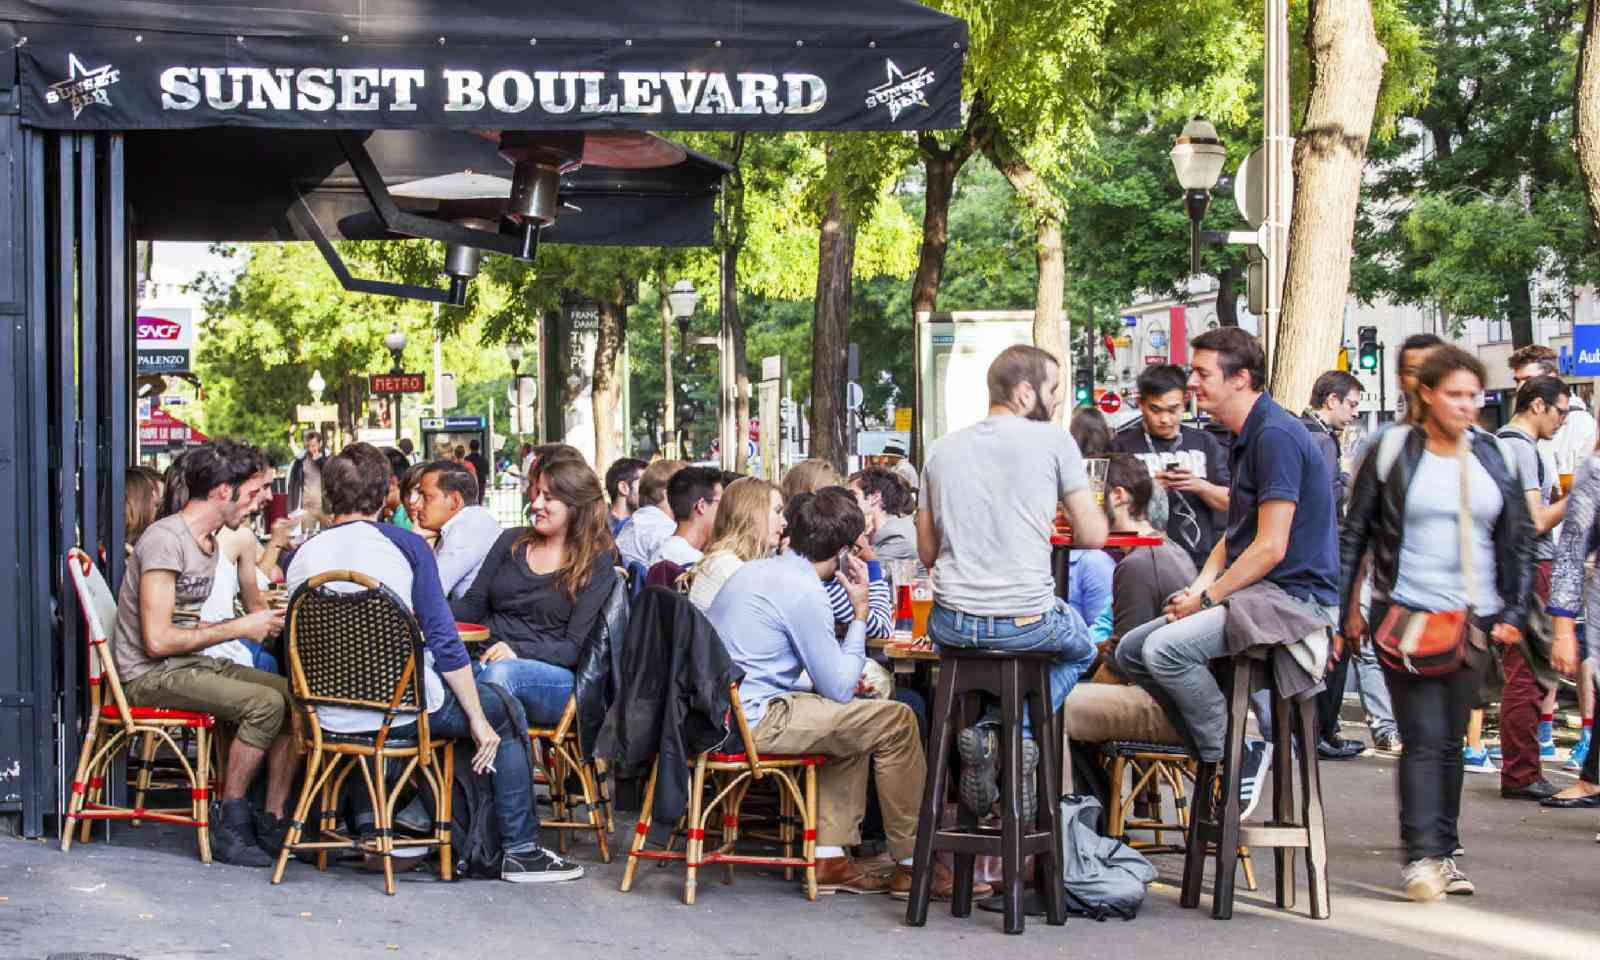 Paris cafe (Shutterstock)